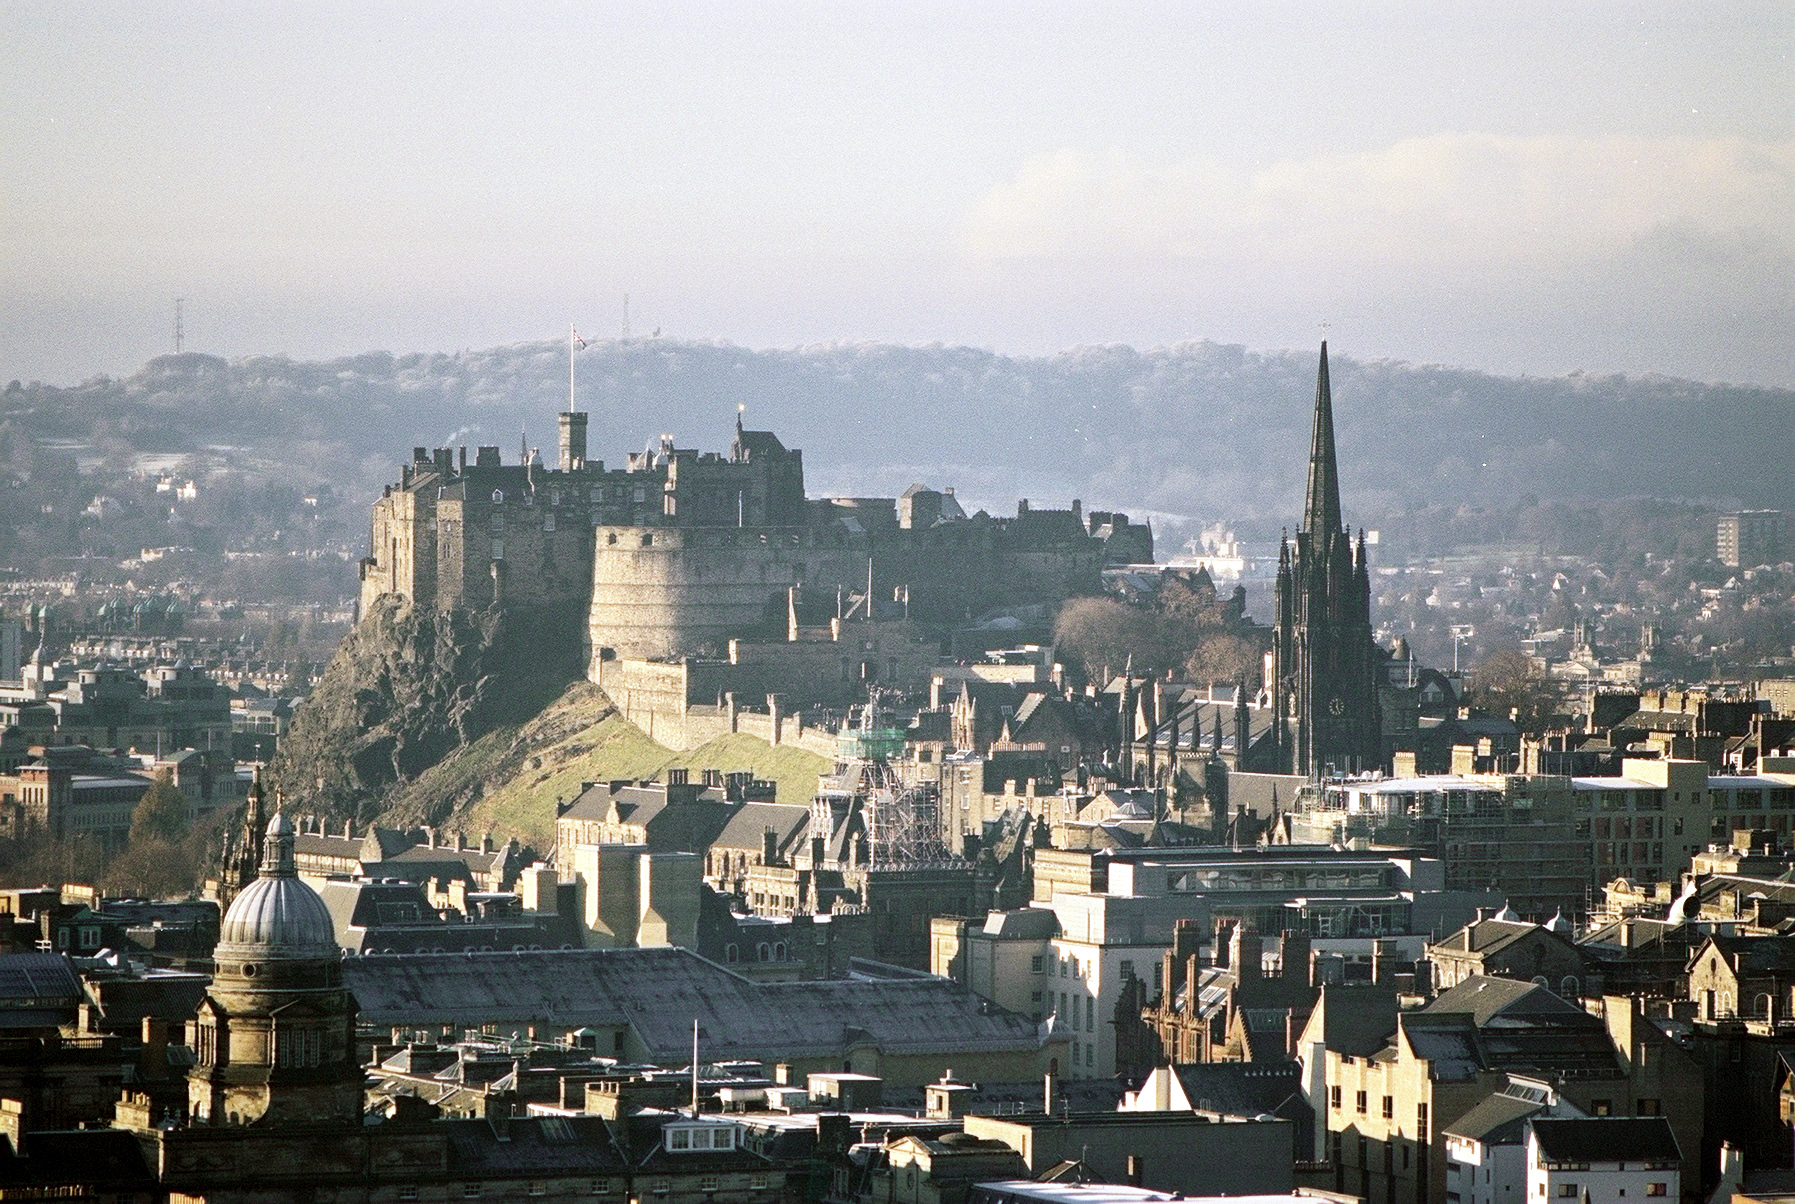 edinburgh castle English: edinburgh castle is a castle fortress which dominates the sky-line of the city of edinburgh, scotland, from its position atop the volcanic castle rockhuman habitation of the site.